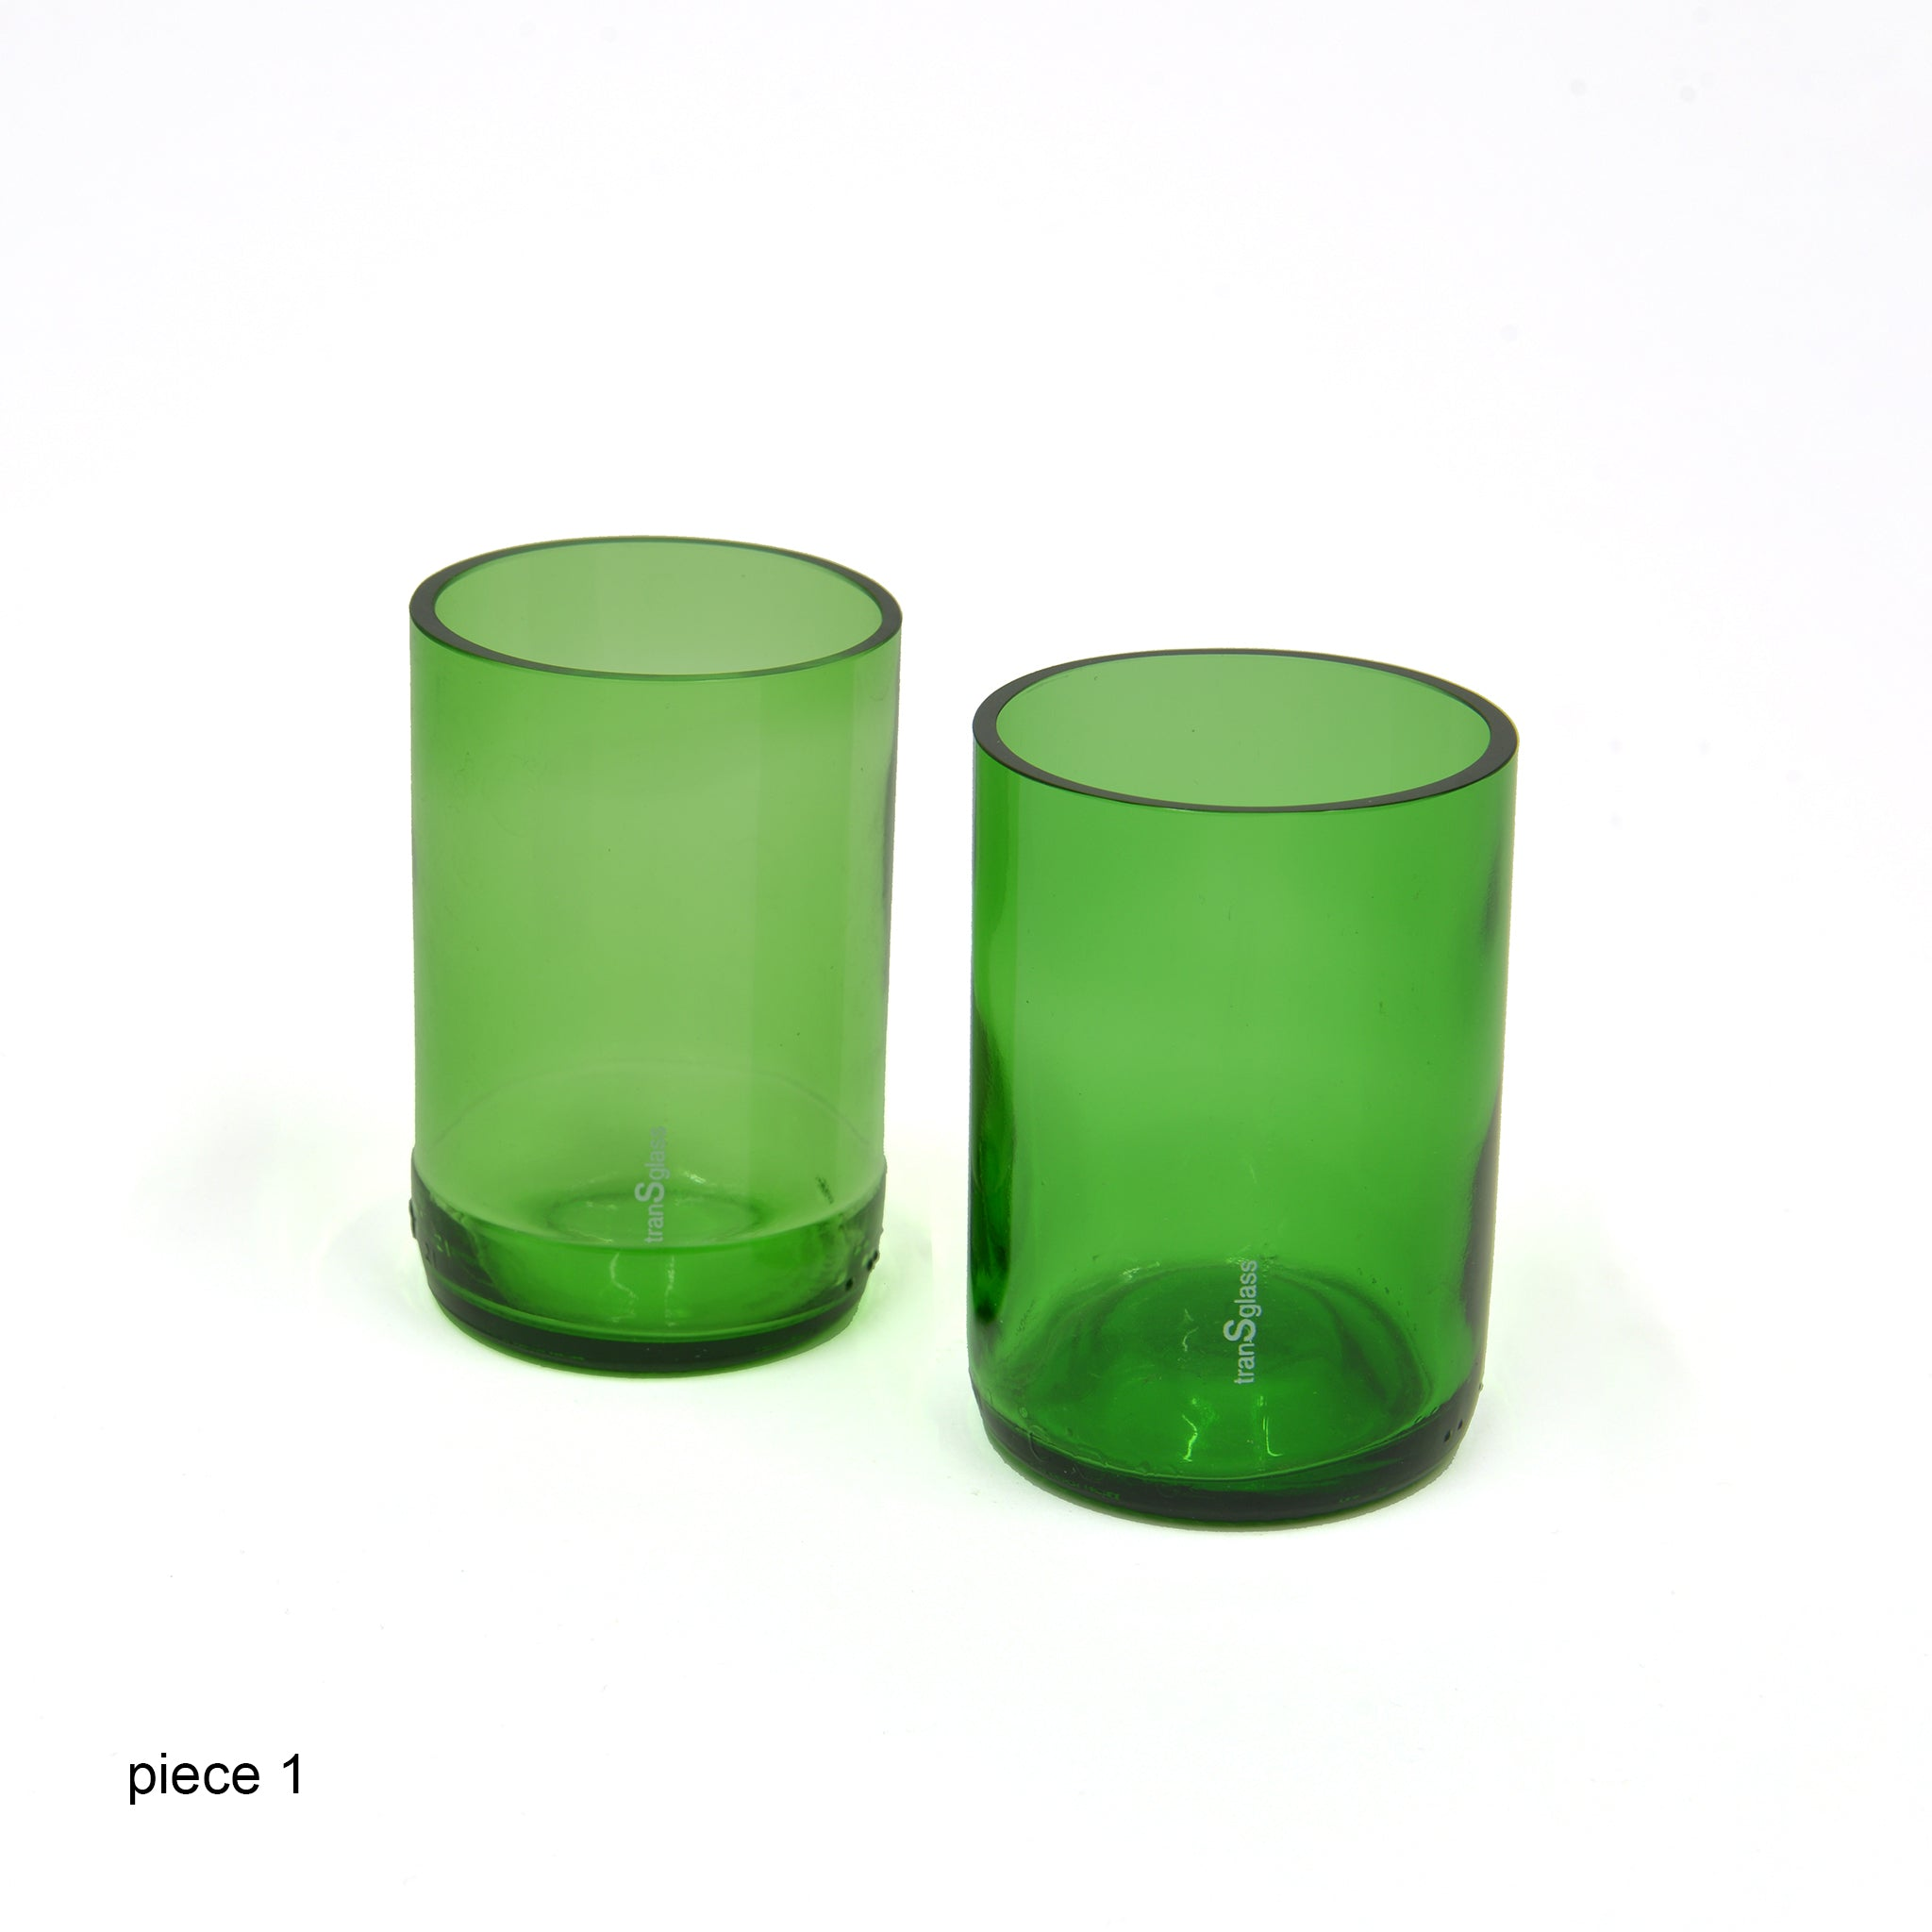 Transglass Set of 2 Glasses - green